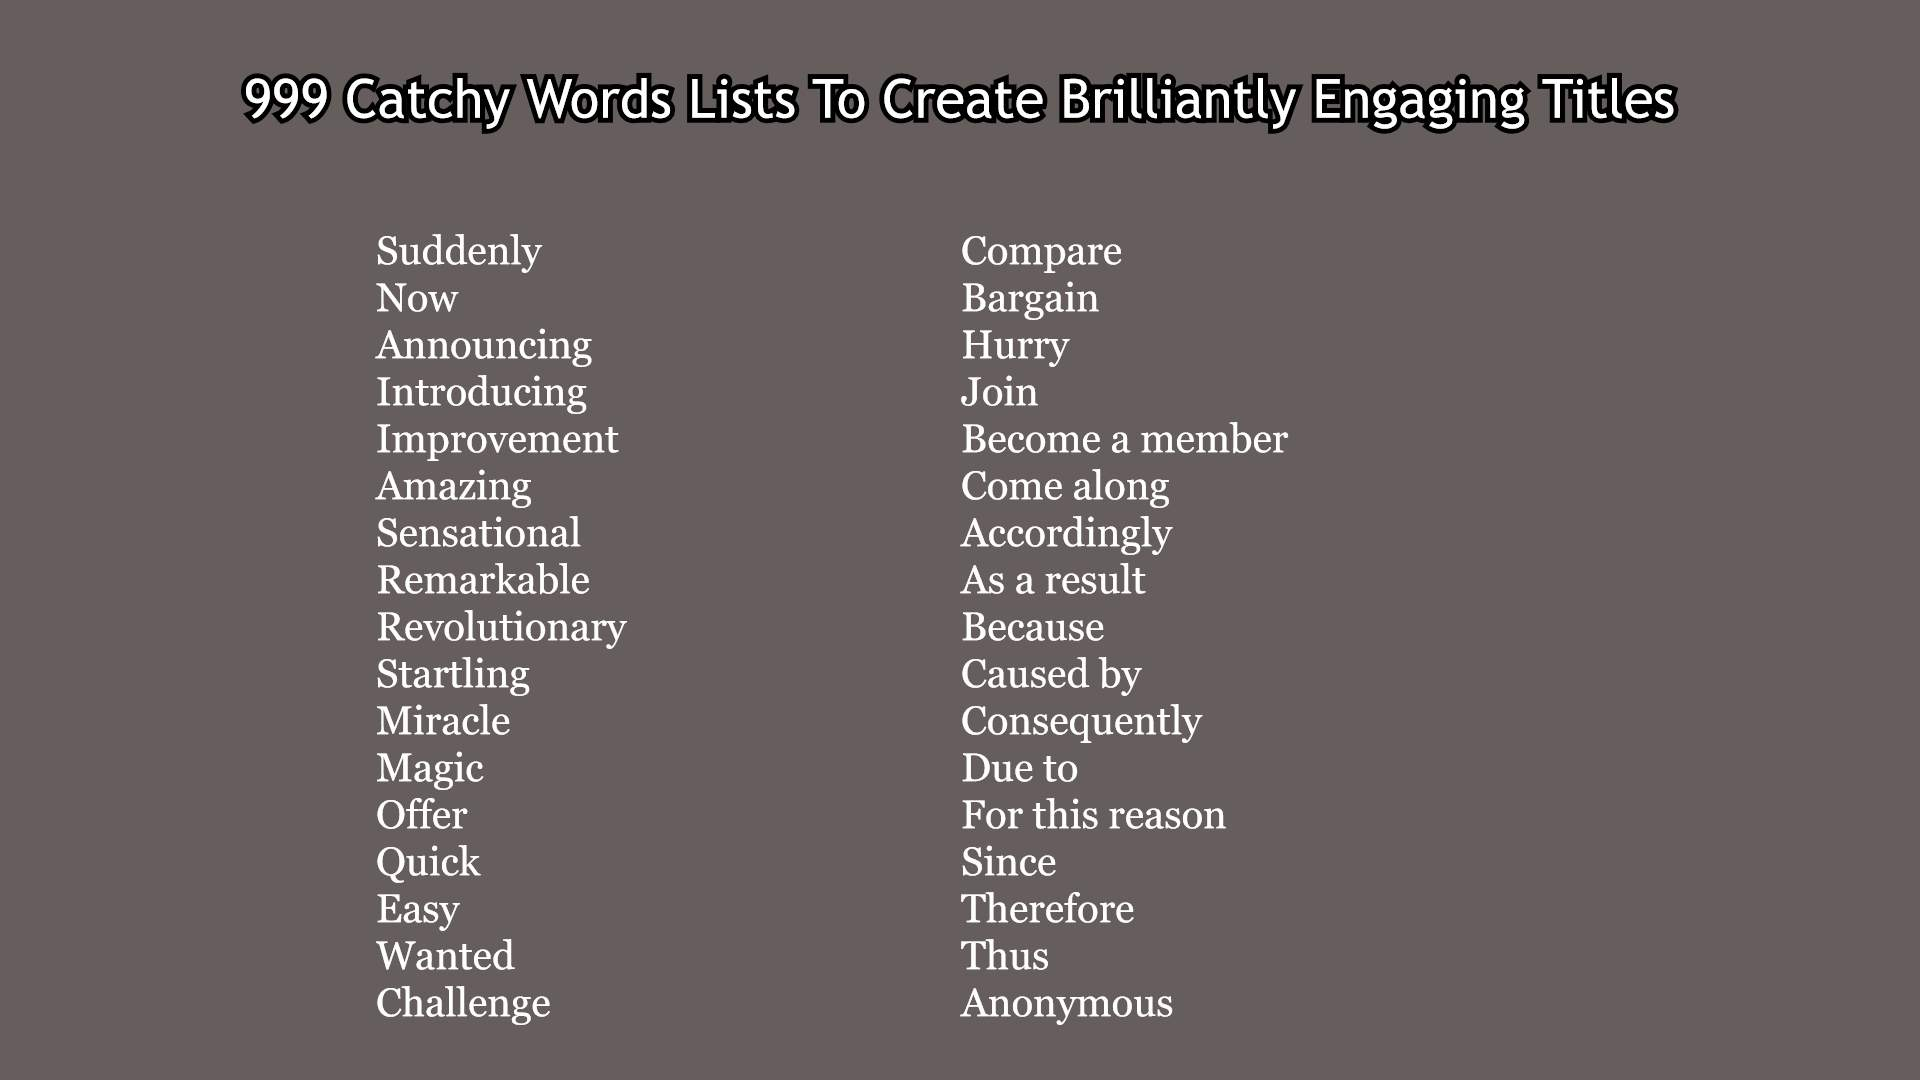 999 Catchy Words Lists To Create Brilliantly Engaging Titles